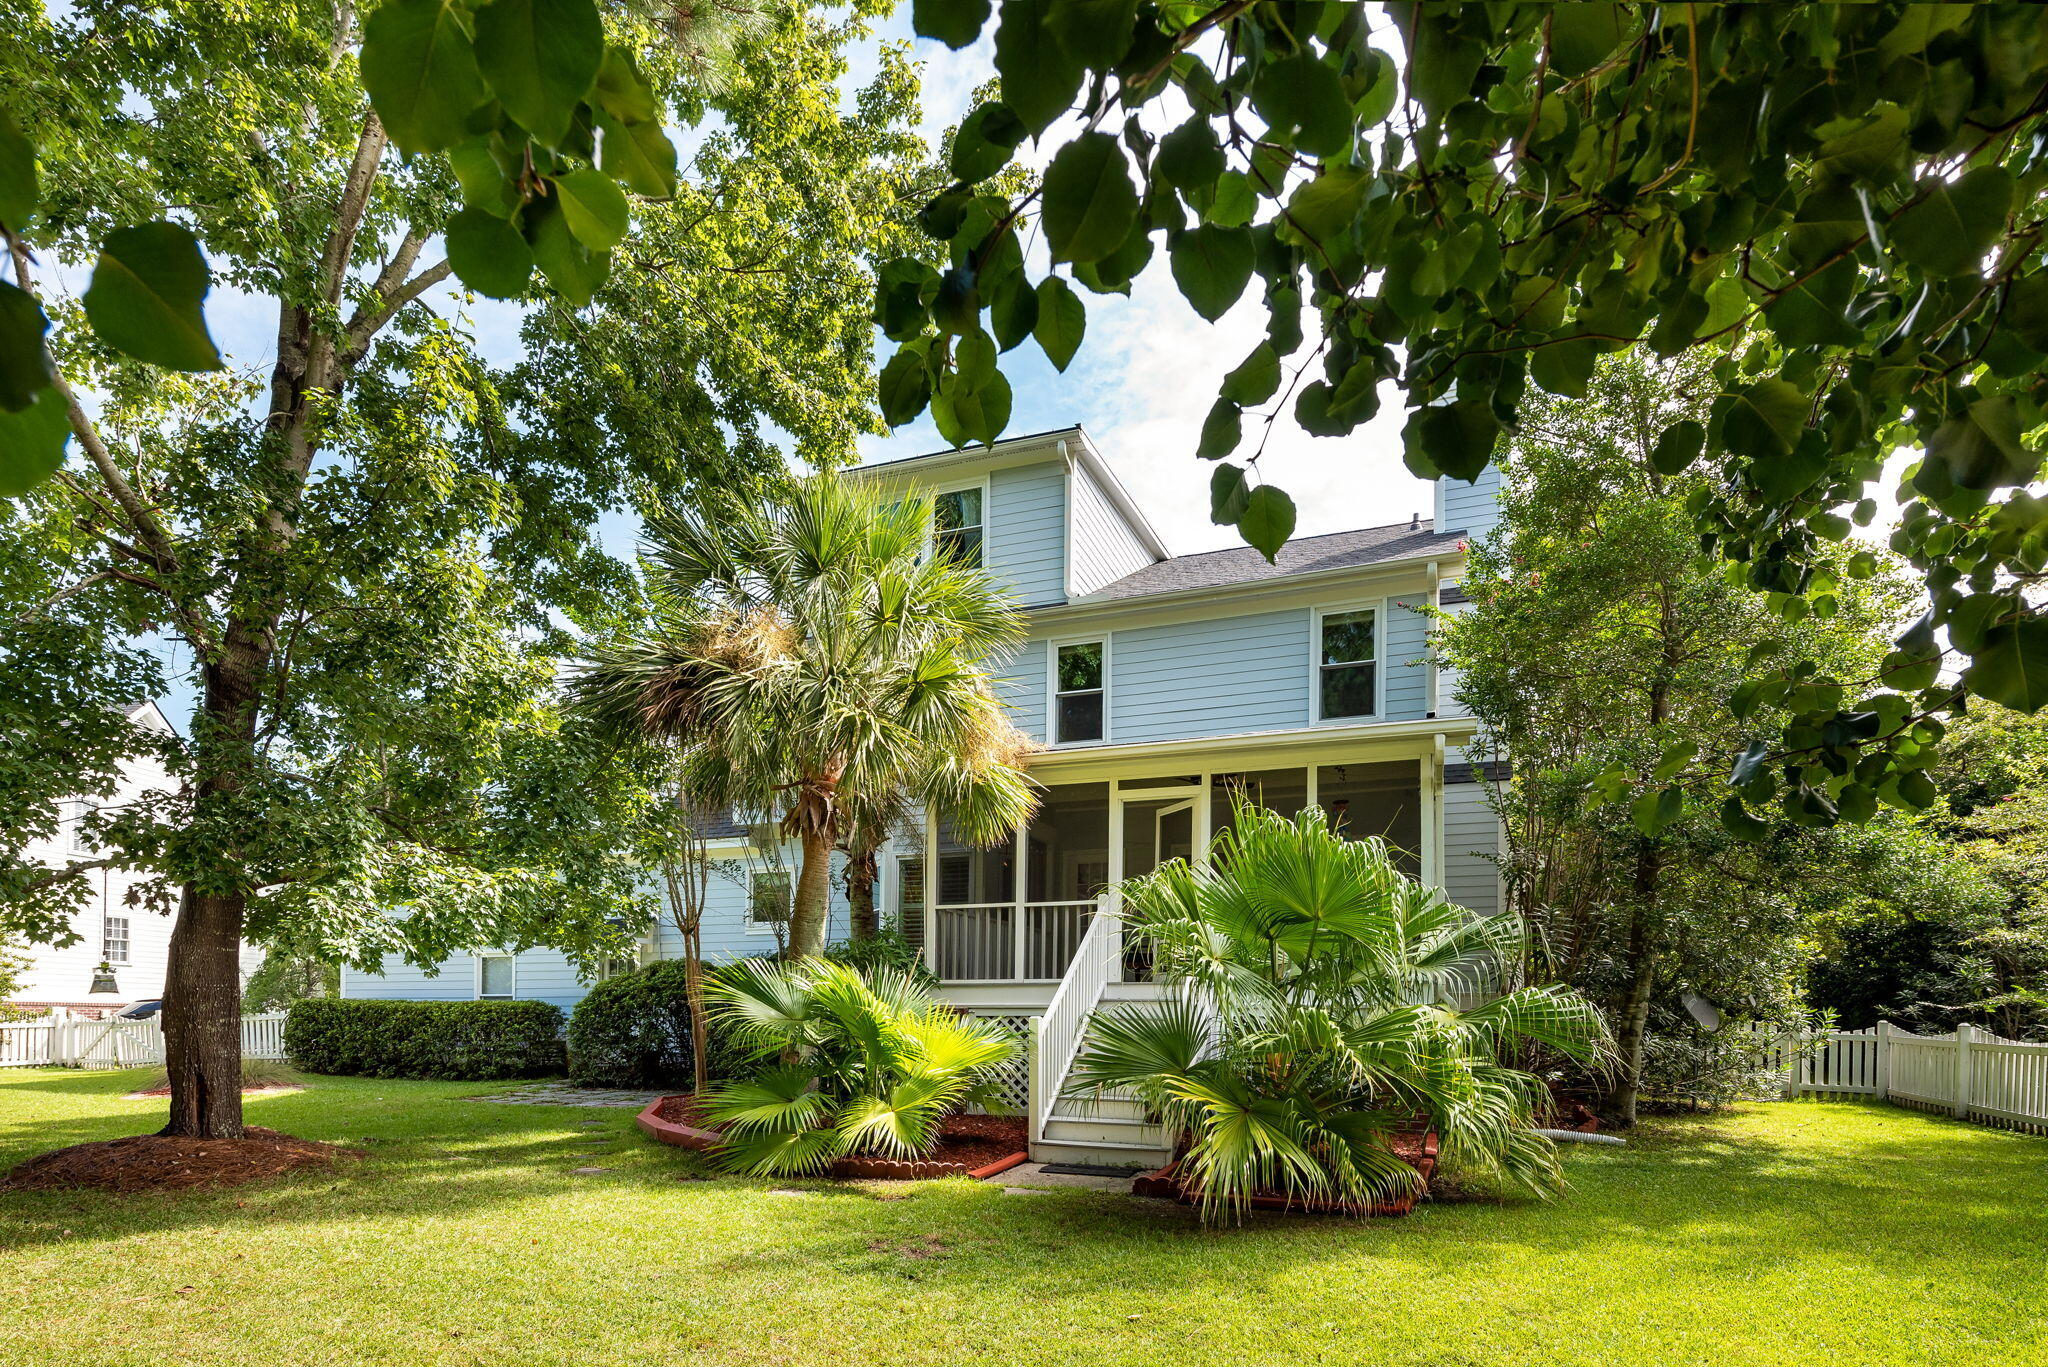 Rivertowne On The Wando Homes For Sale - 2301 Hartfords Bluff, Mount Pleasant, SC - 14